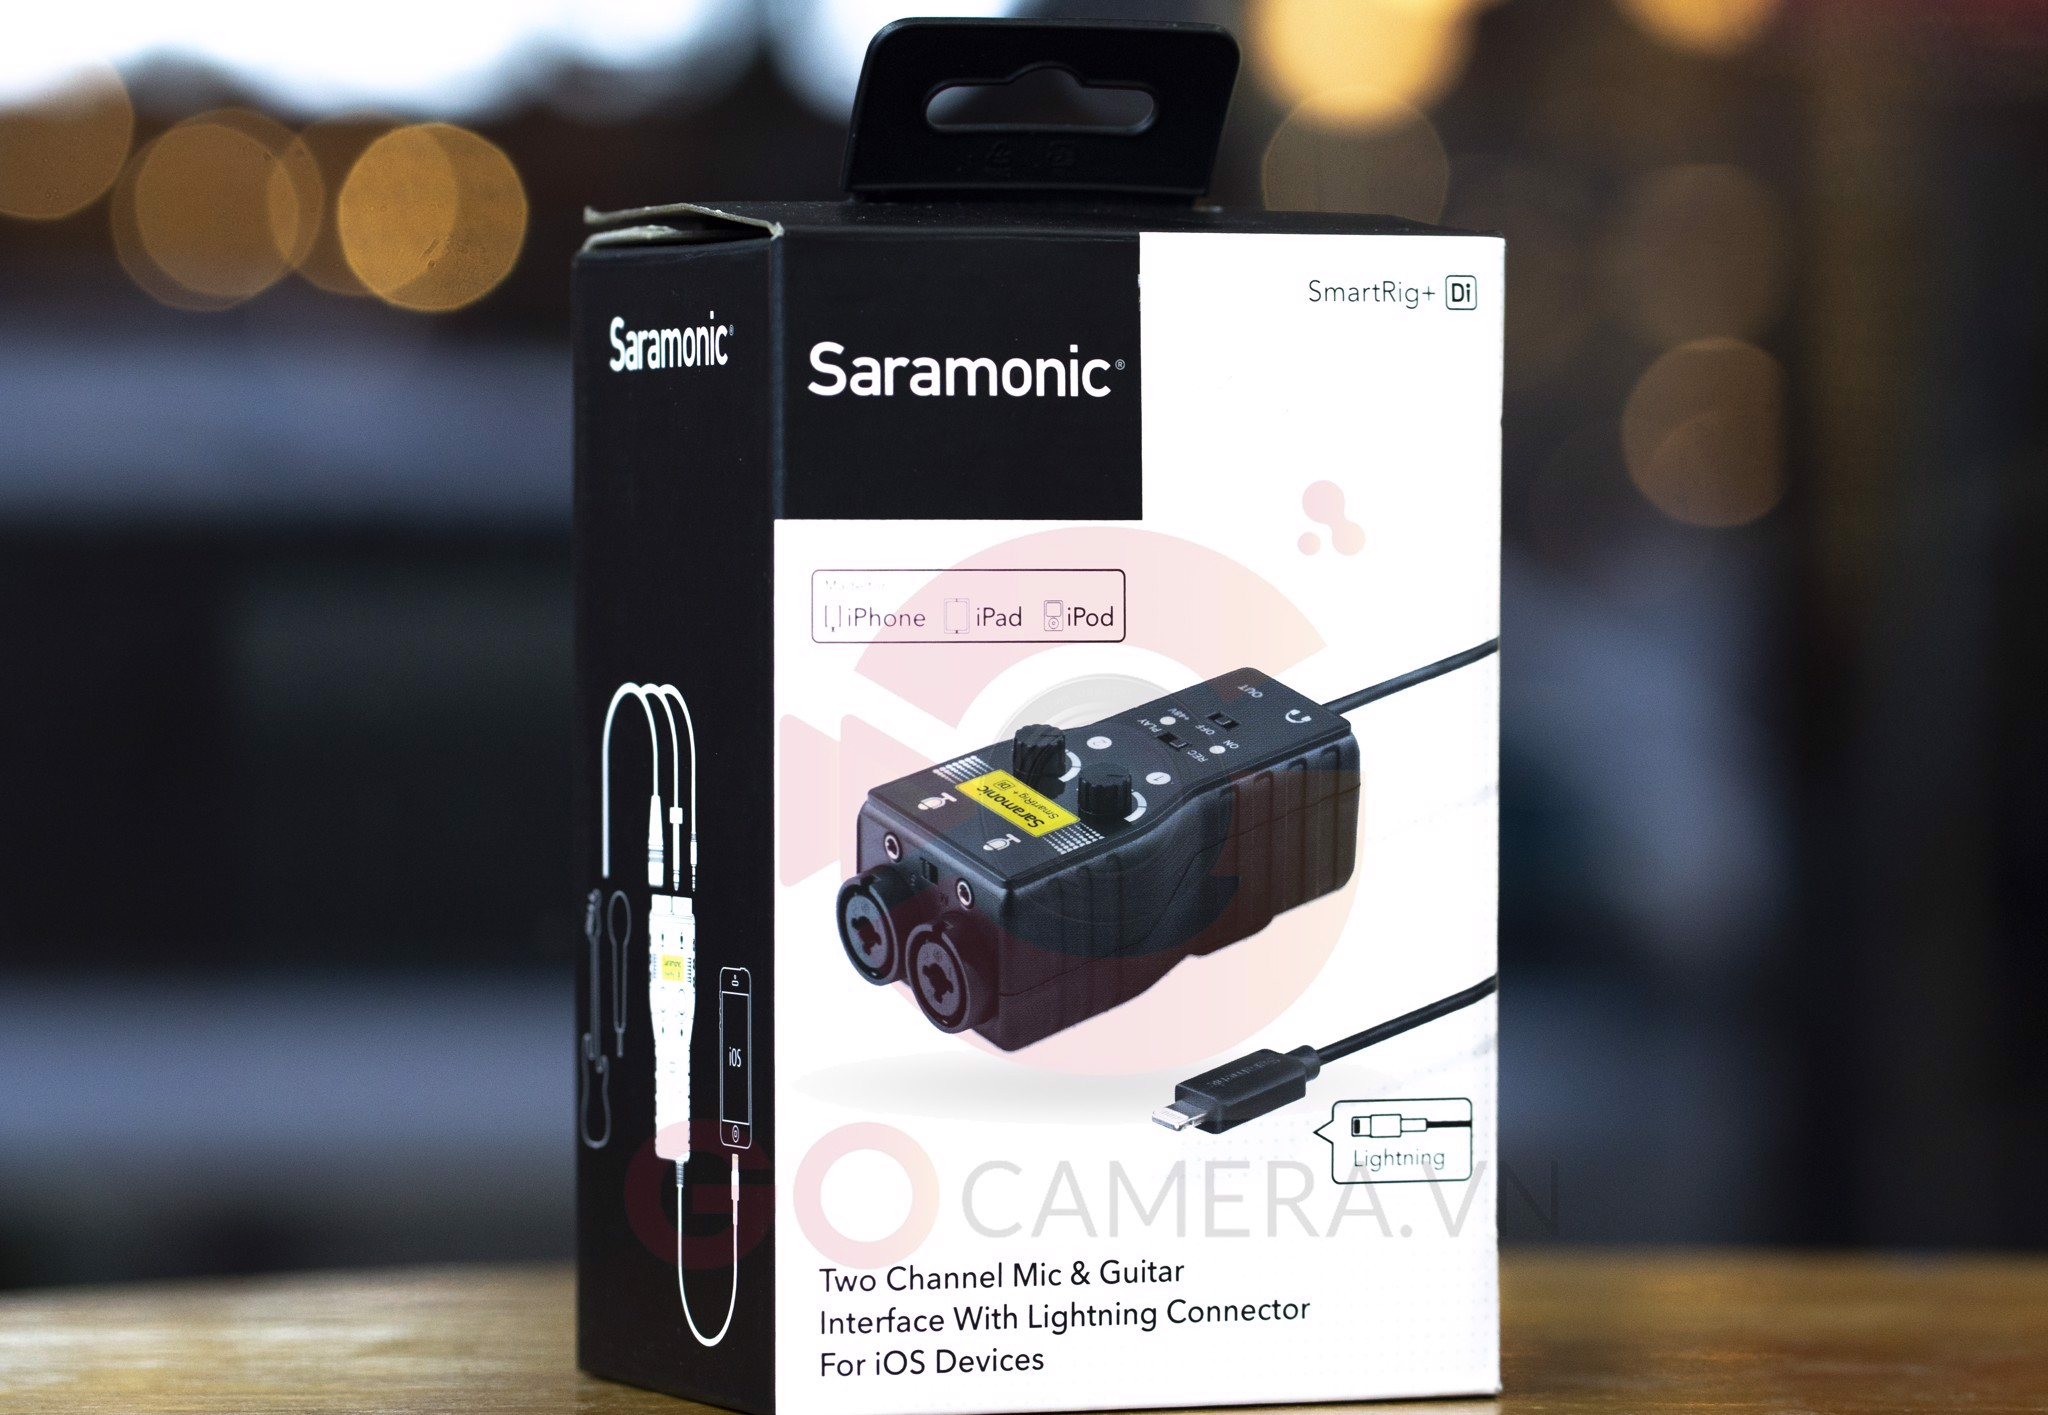 Saramonic SmartRig+ Di for iPhone/iPad